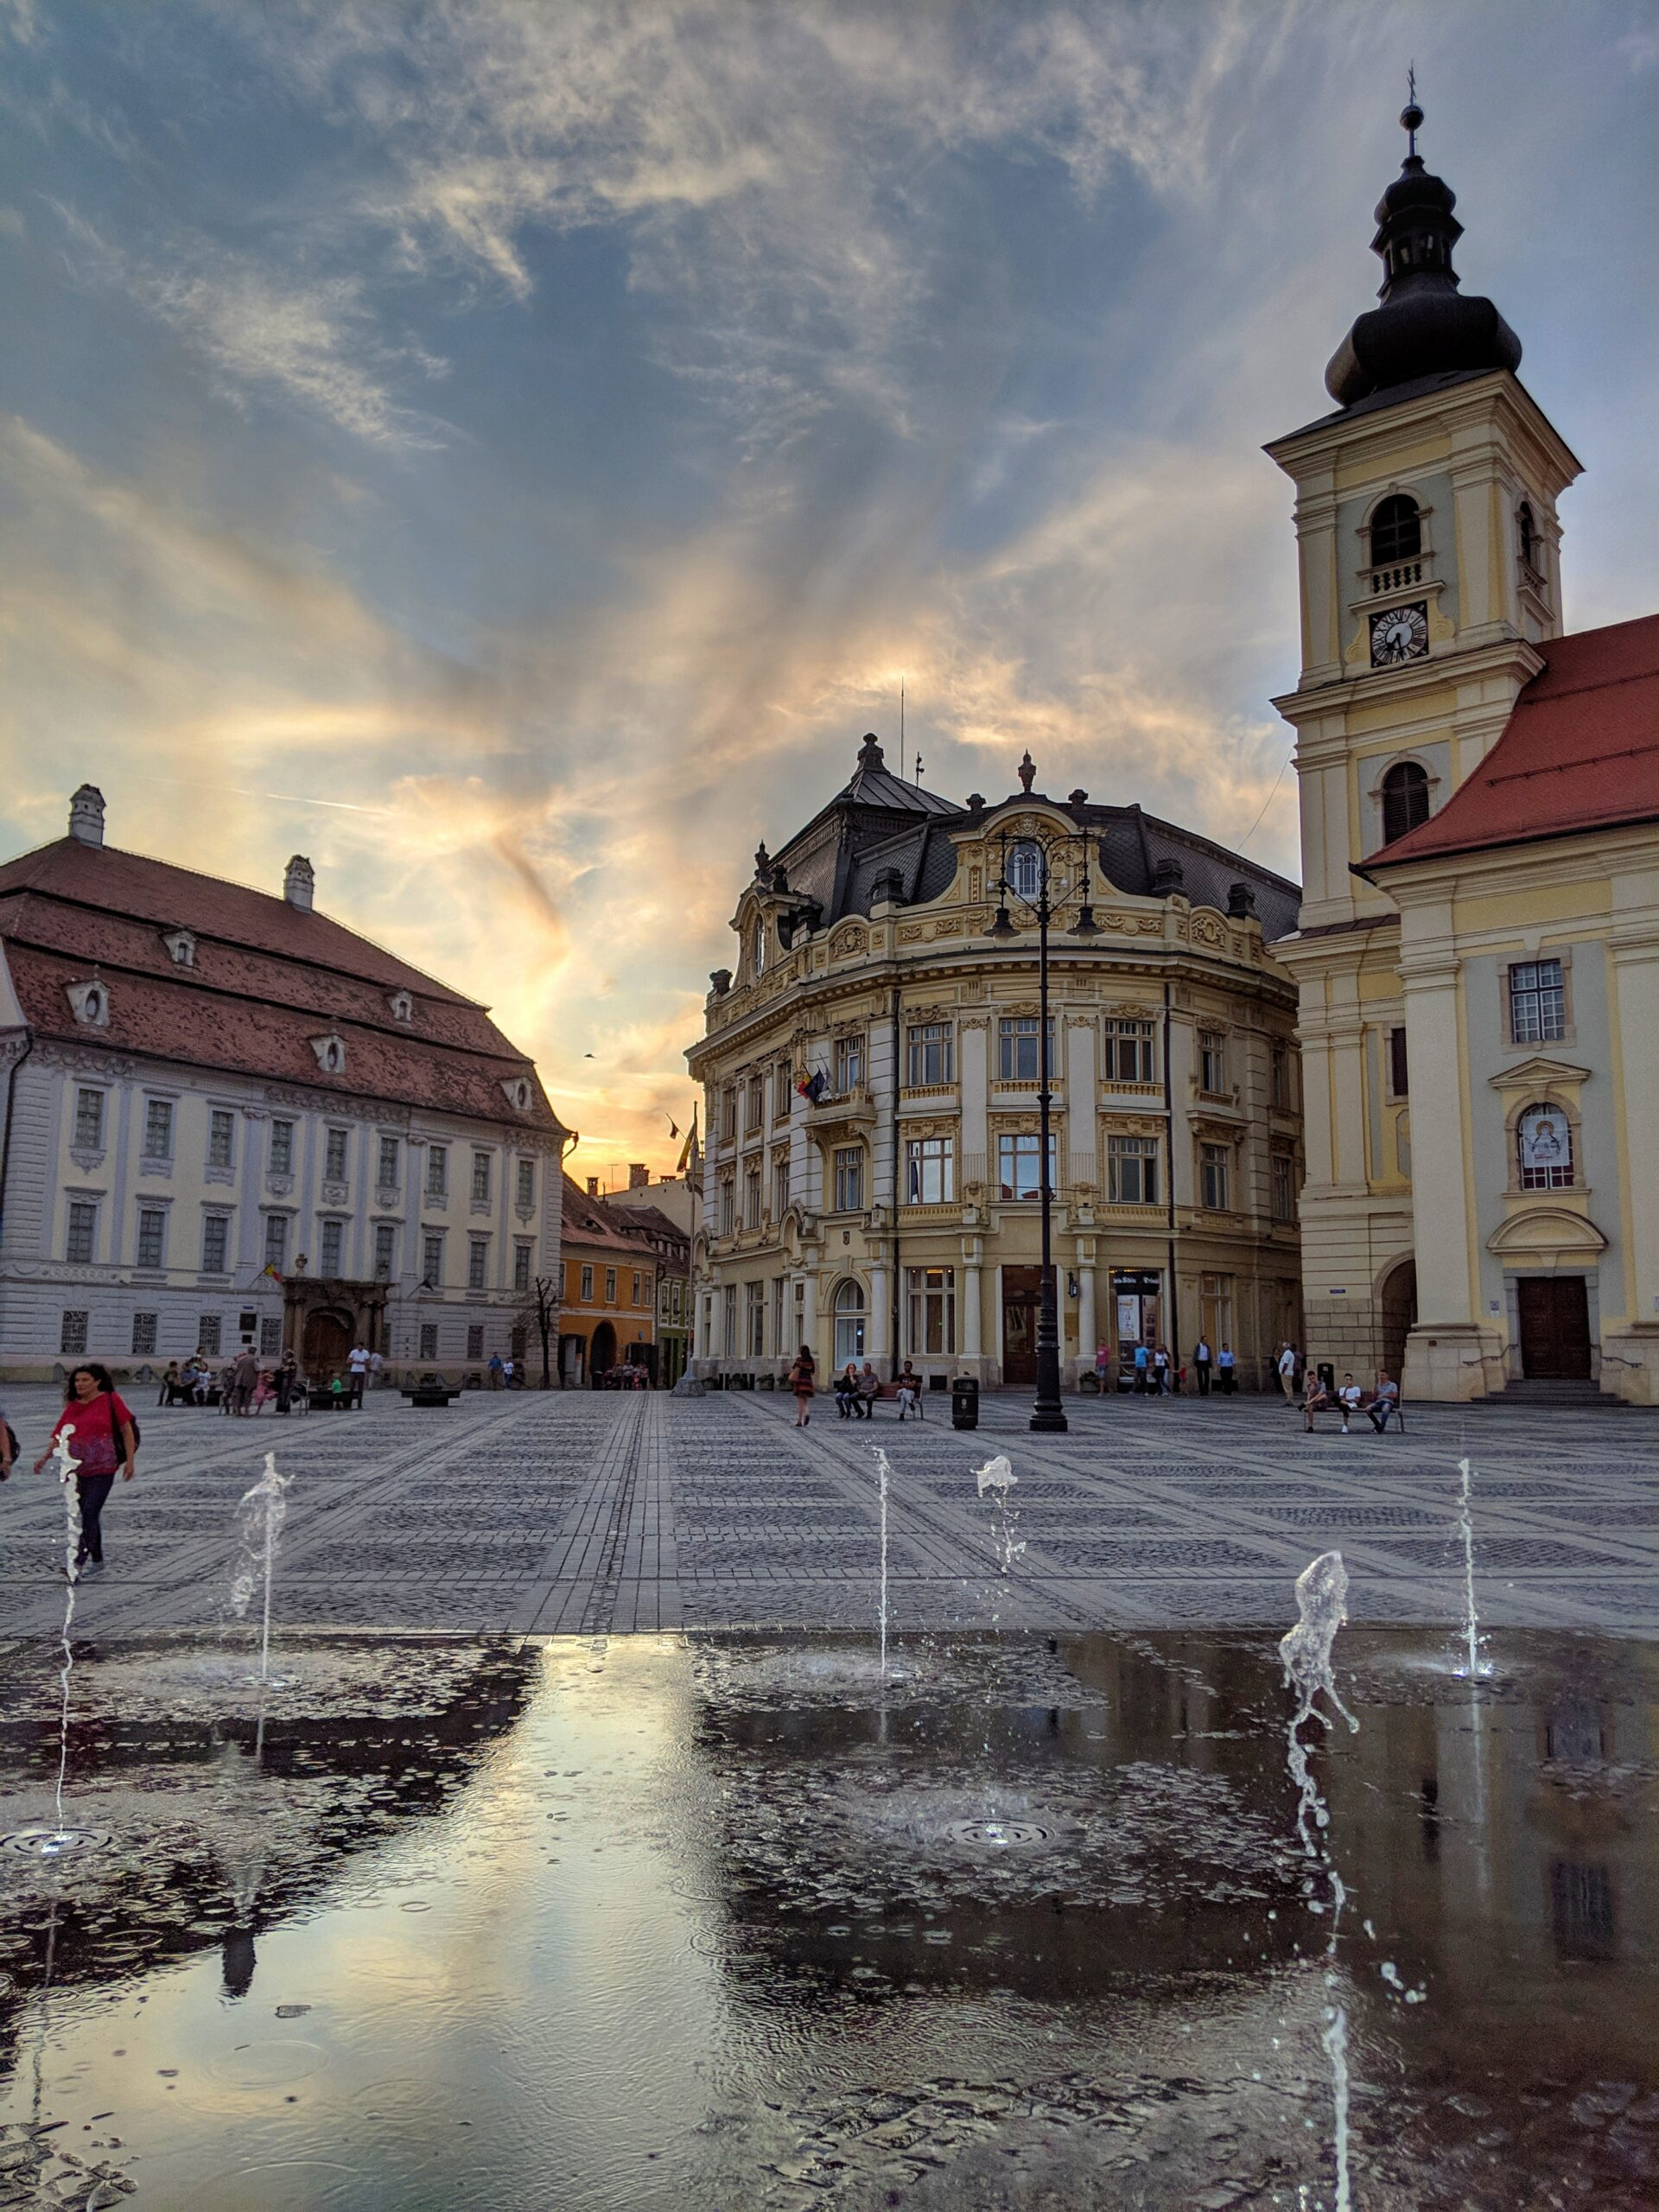 Views from the square in sibiu, romania